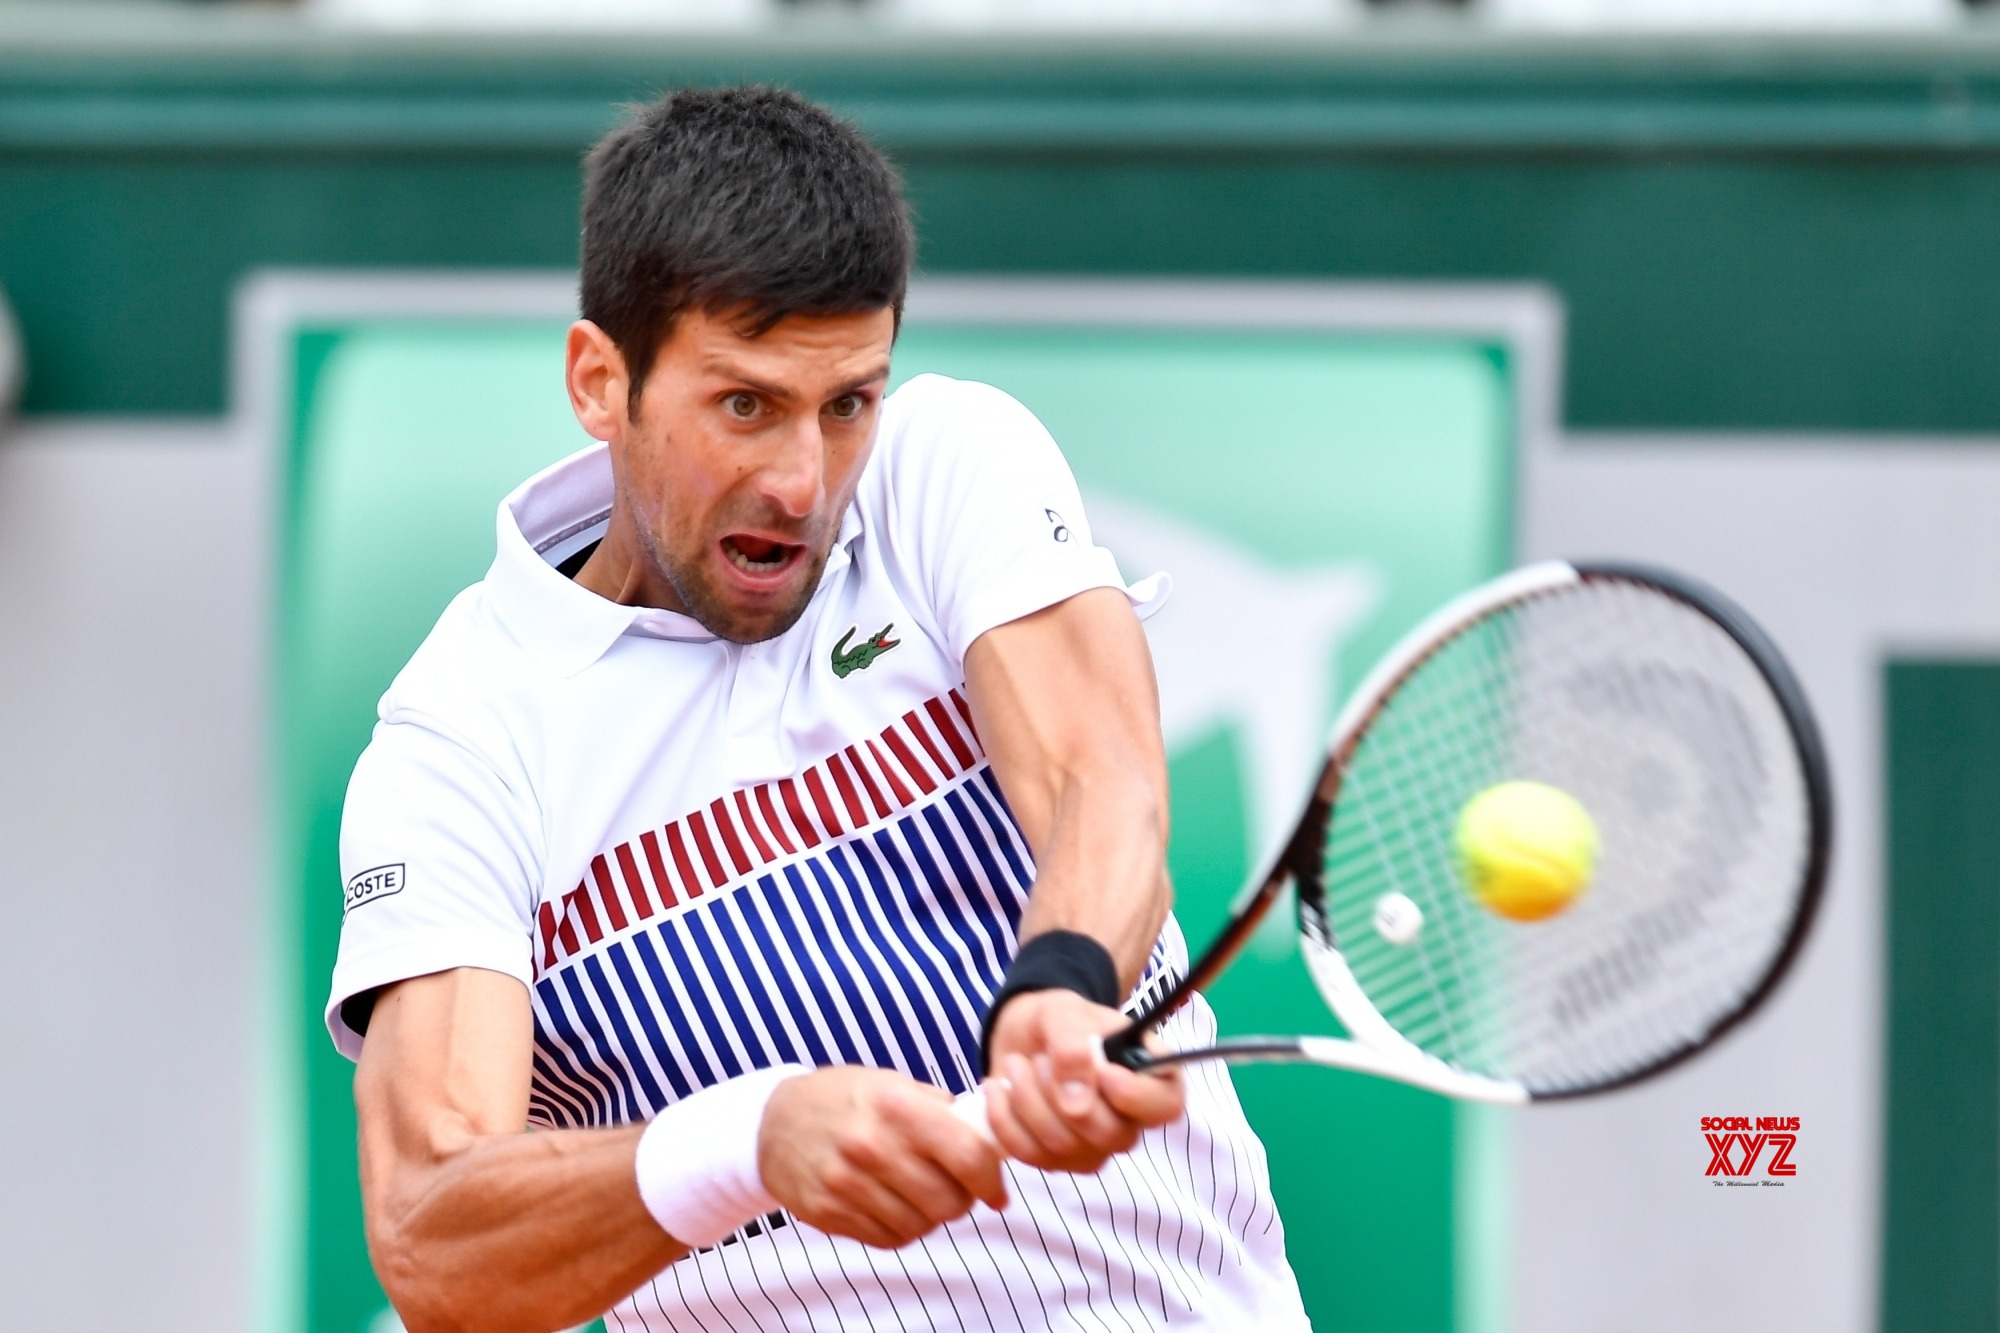 Top seed Djokovic reaches semi-finals at Wimbledon